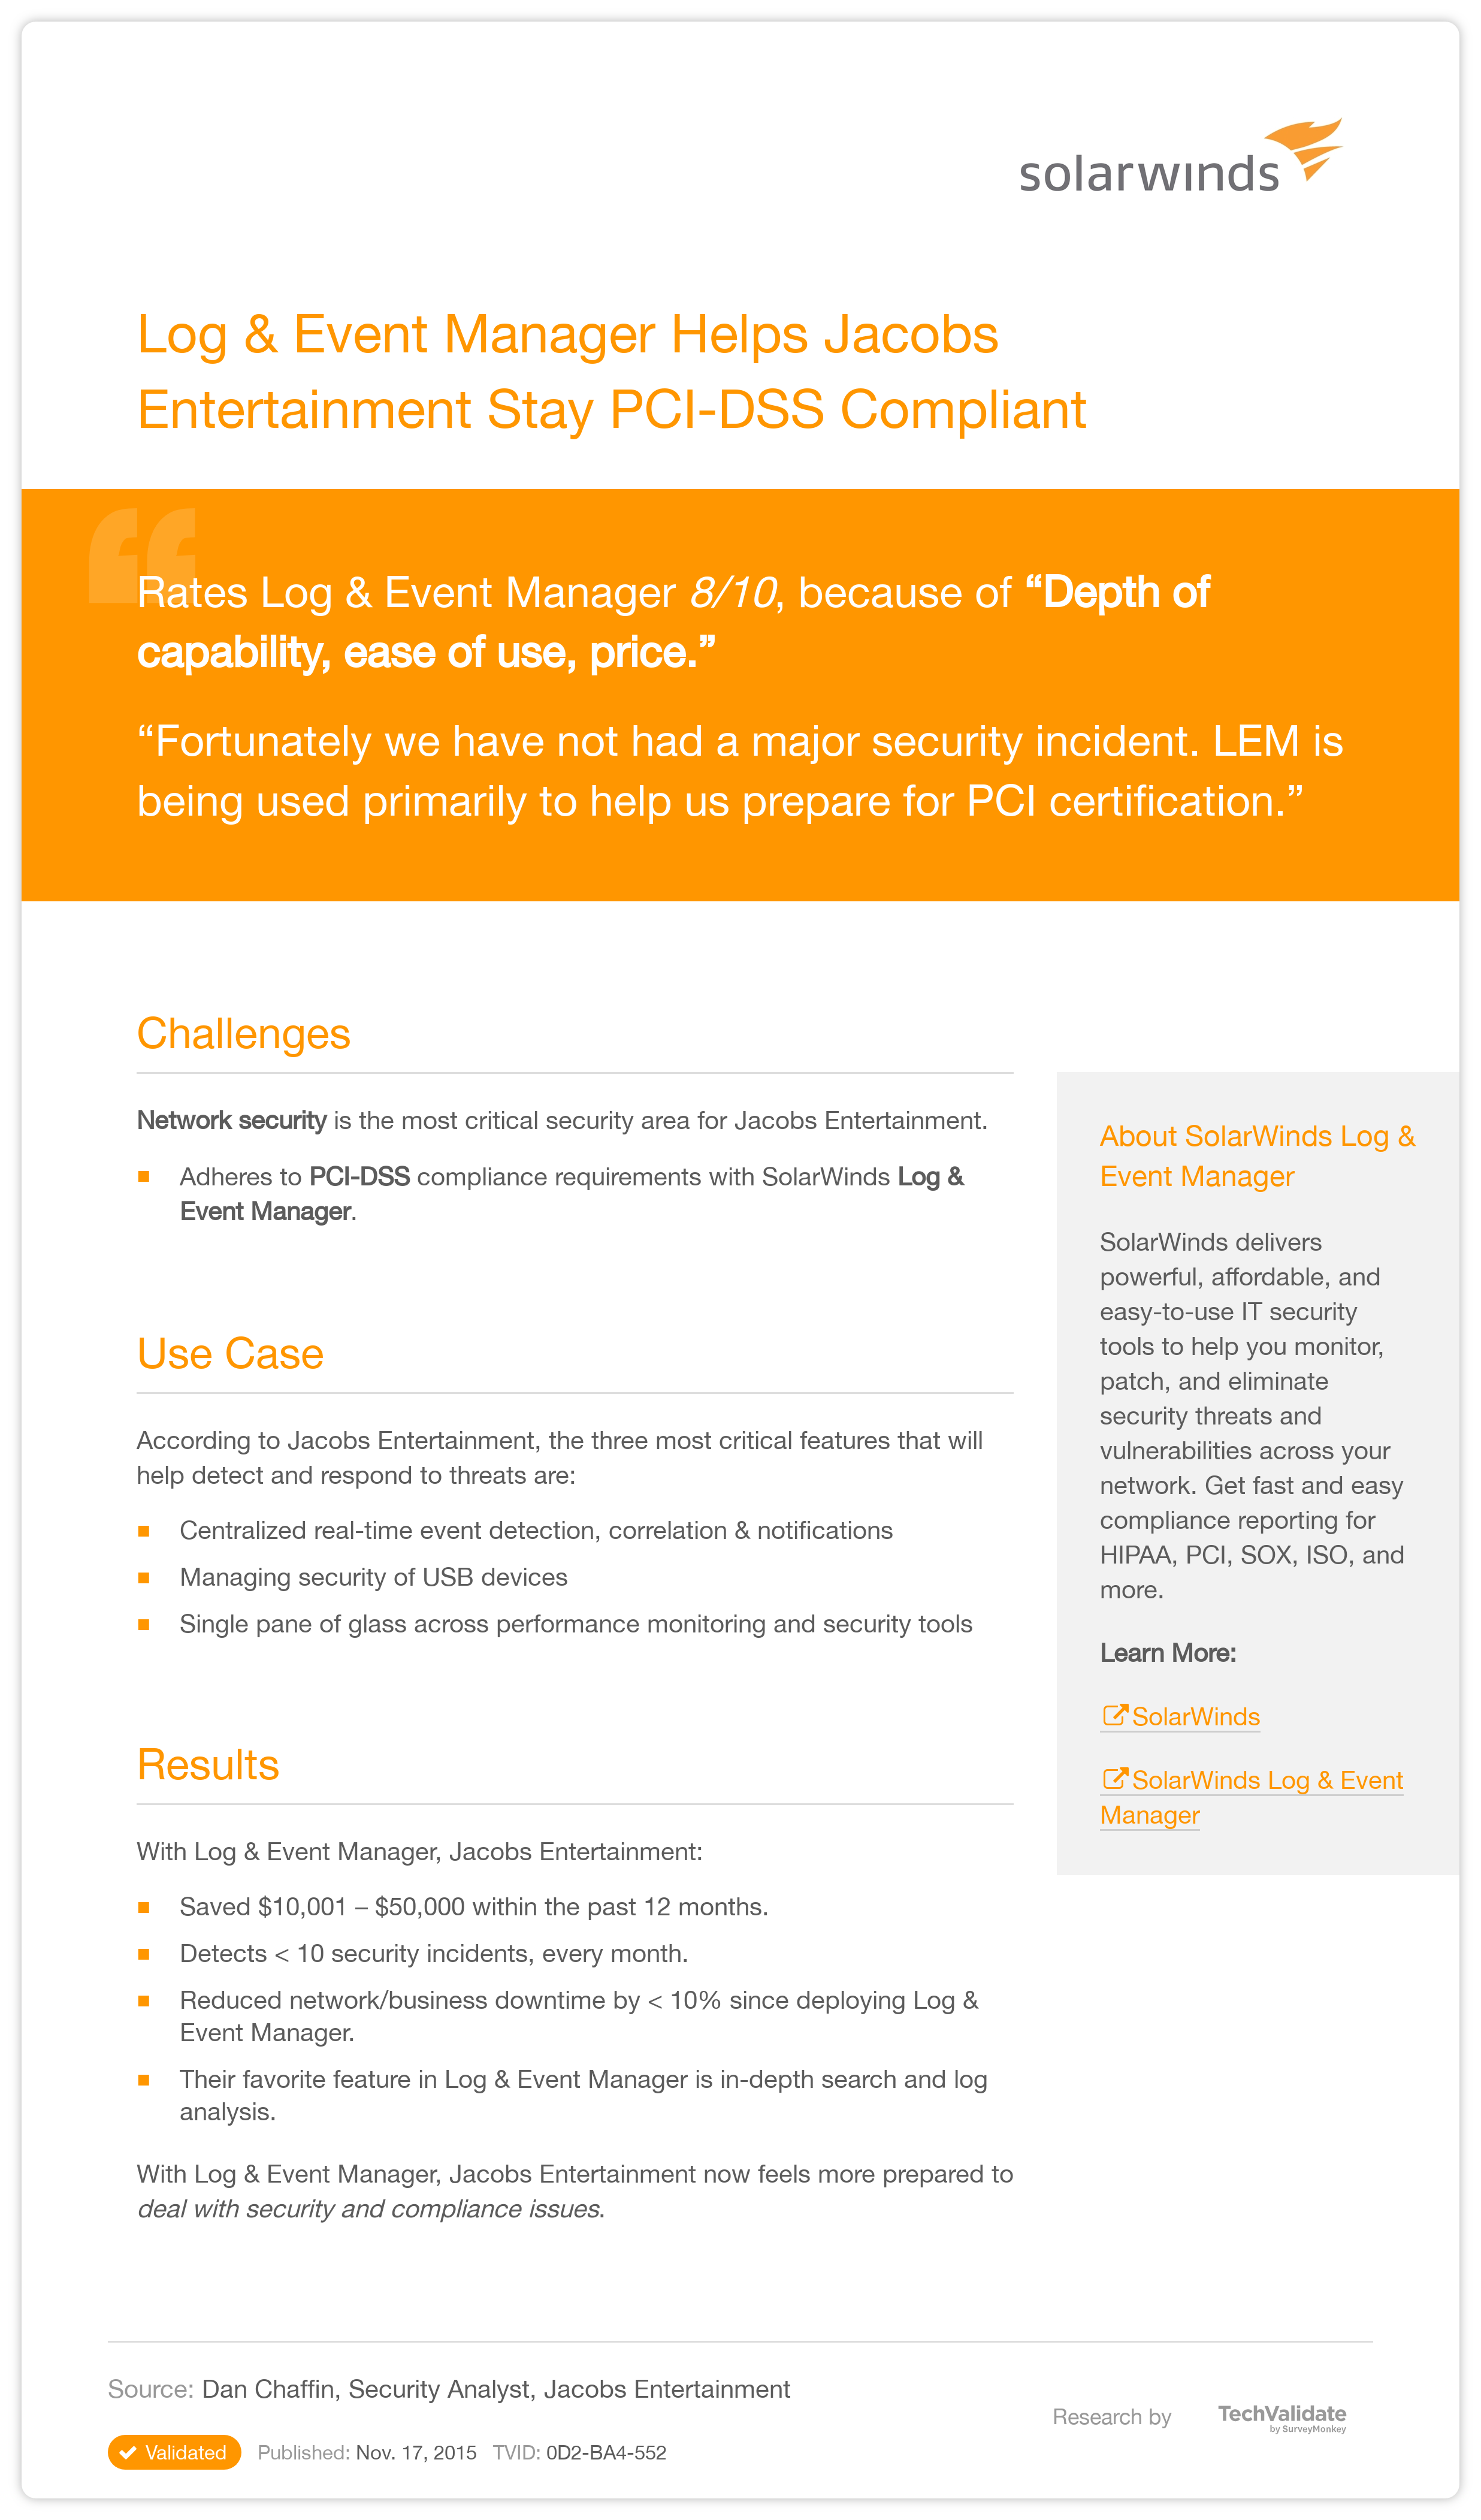 Solarwinds security log event manager helps jacobs entertainment solarwinds security log event manager helps jacobs entertainment stay pci dss compliant techvalidate xflitez Image collections